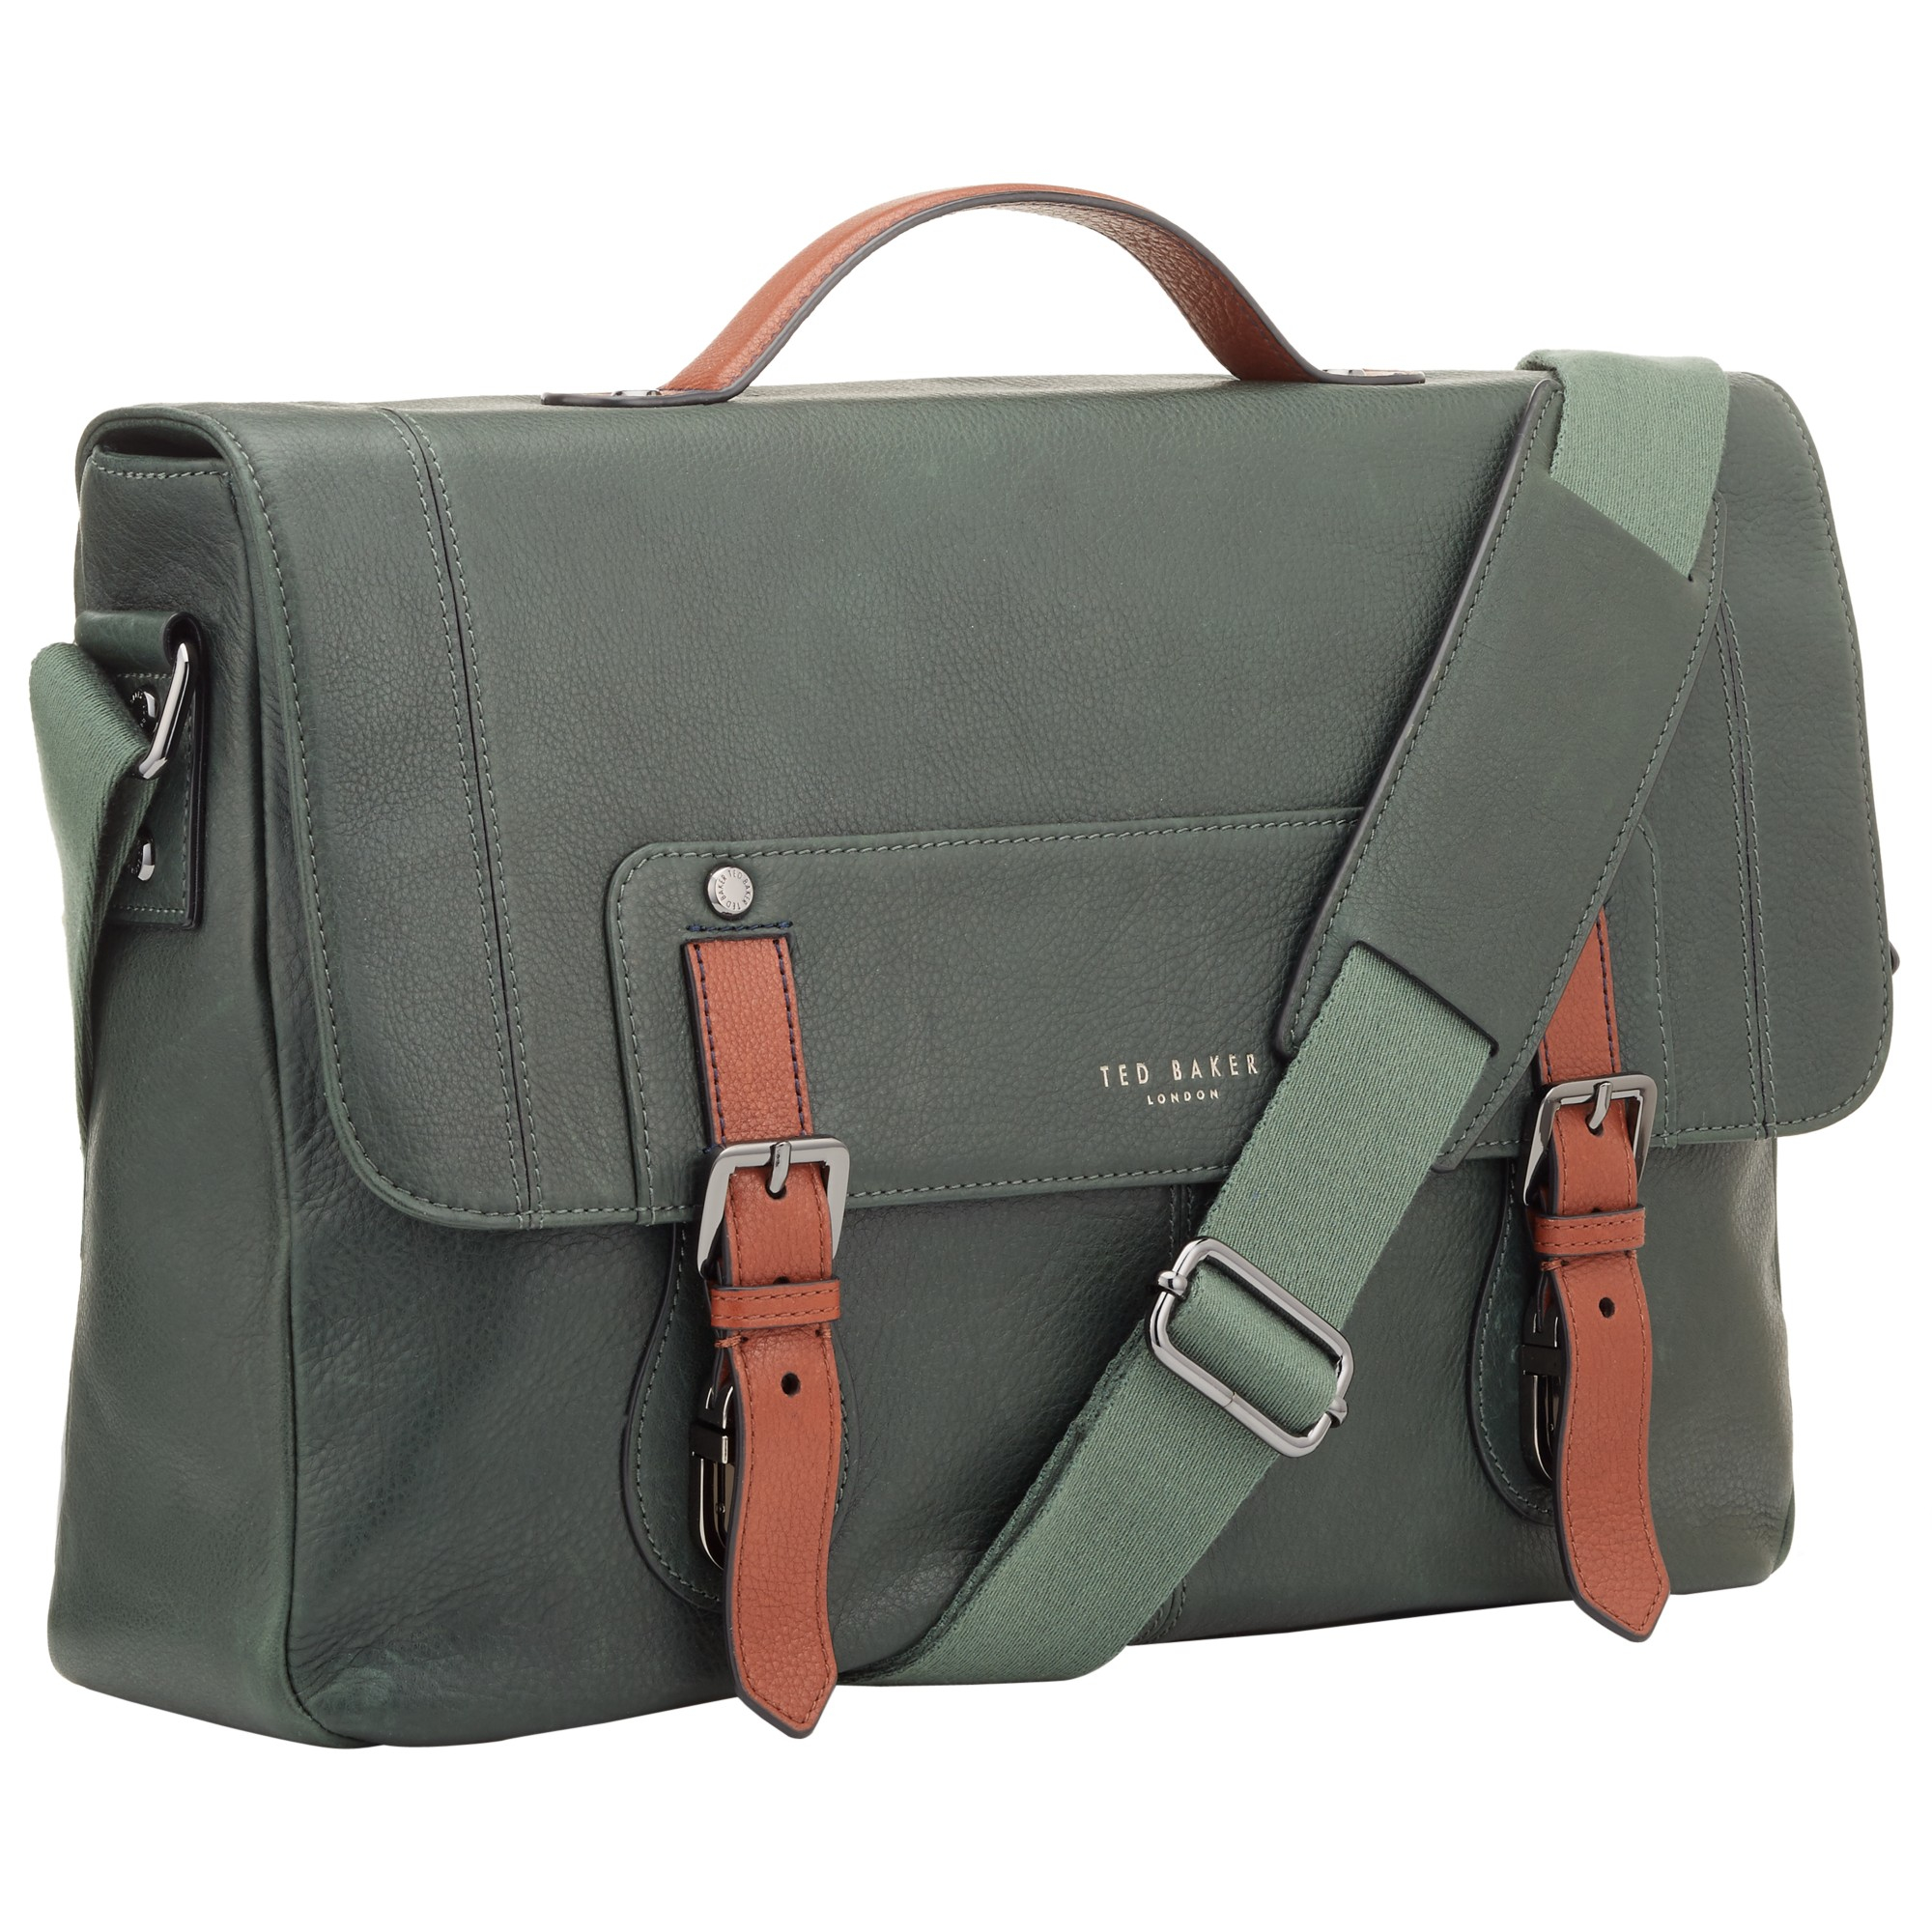 9ceb12eca5bc Ted Baker Boombag Leather Messenger Bag in Green for Men - Lyst